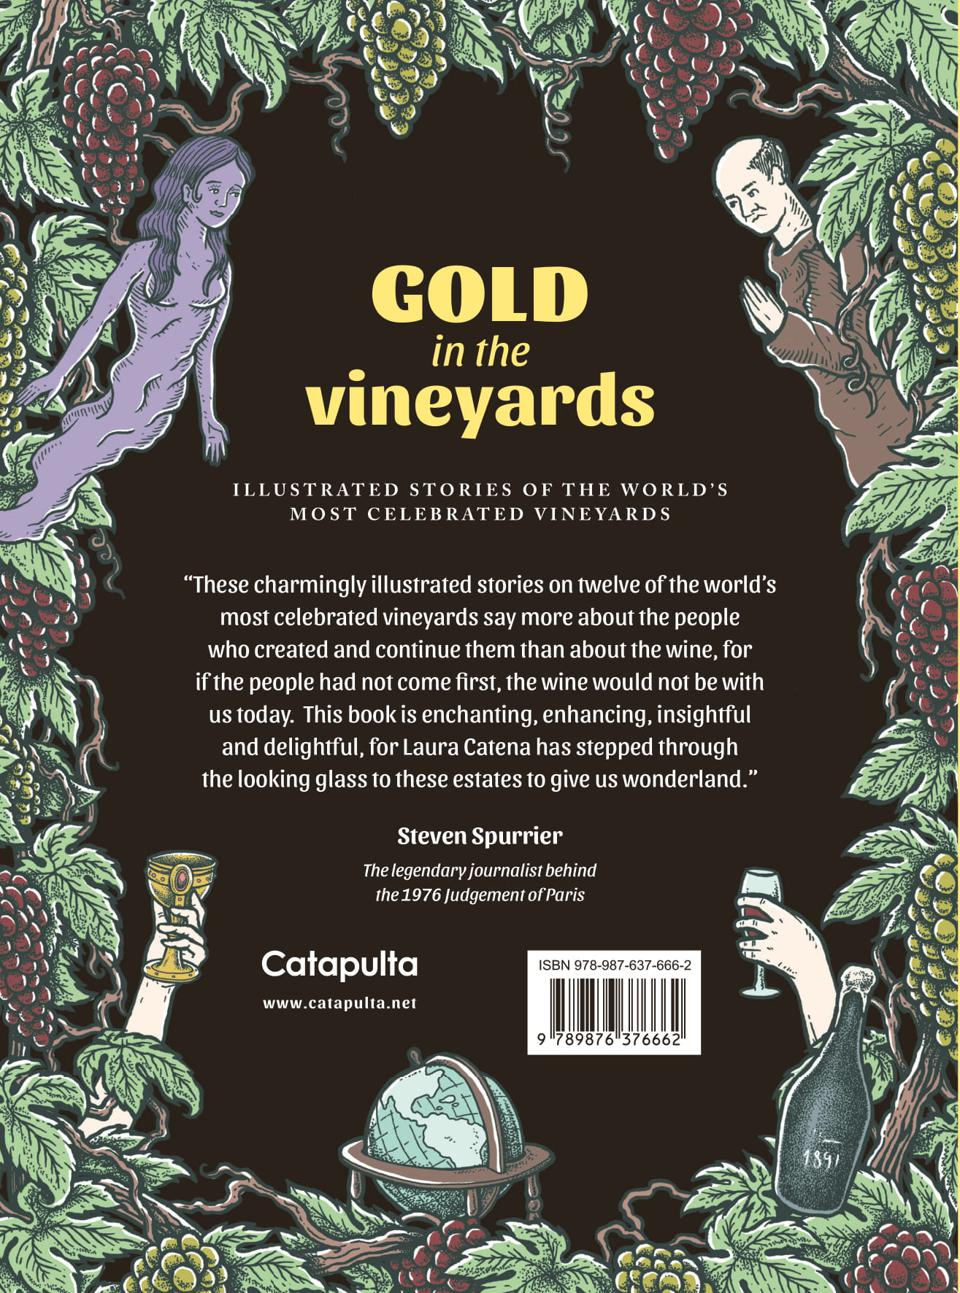 Back cover of Gold in the Vineyards